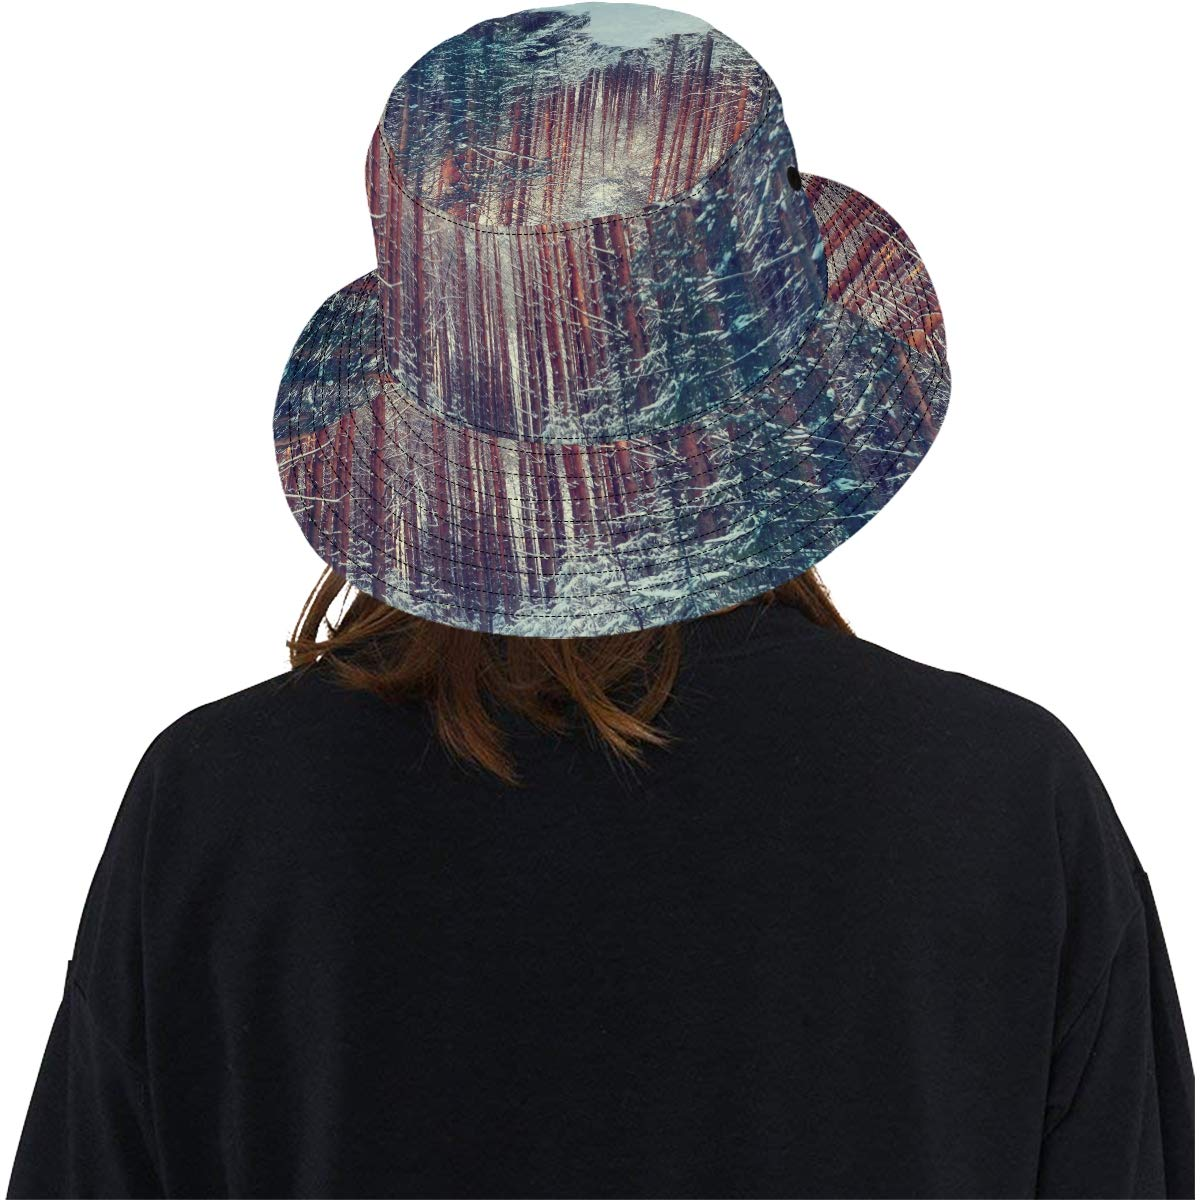 Winter Frosty Snow Forest Landscape New Summer Unisex Cotton Fashion Fishing Sun Bucket Hats for Kid Teens Women and Men with Customize Top Packable Fisherman Cap for Outdoor Travel